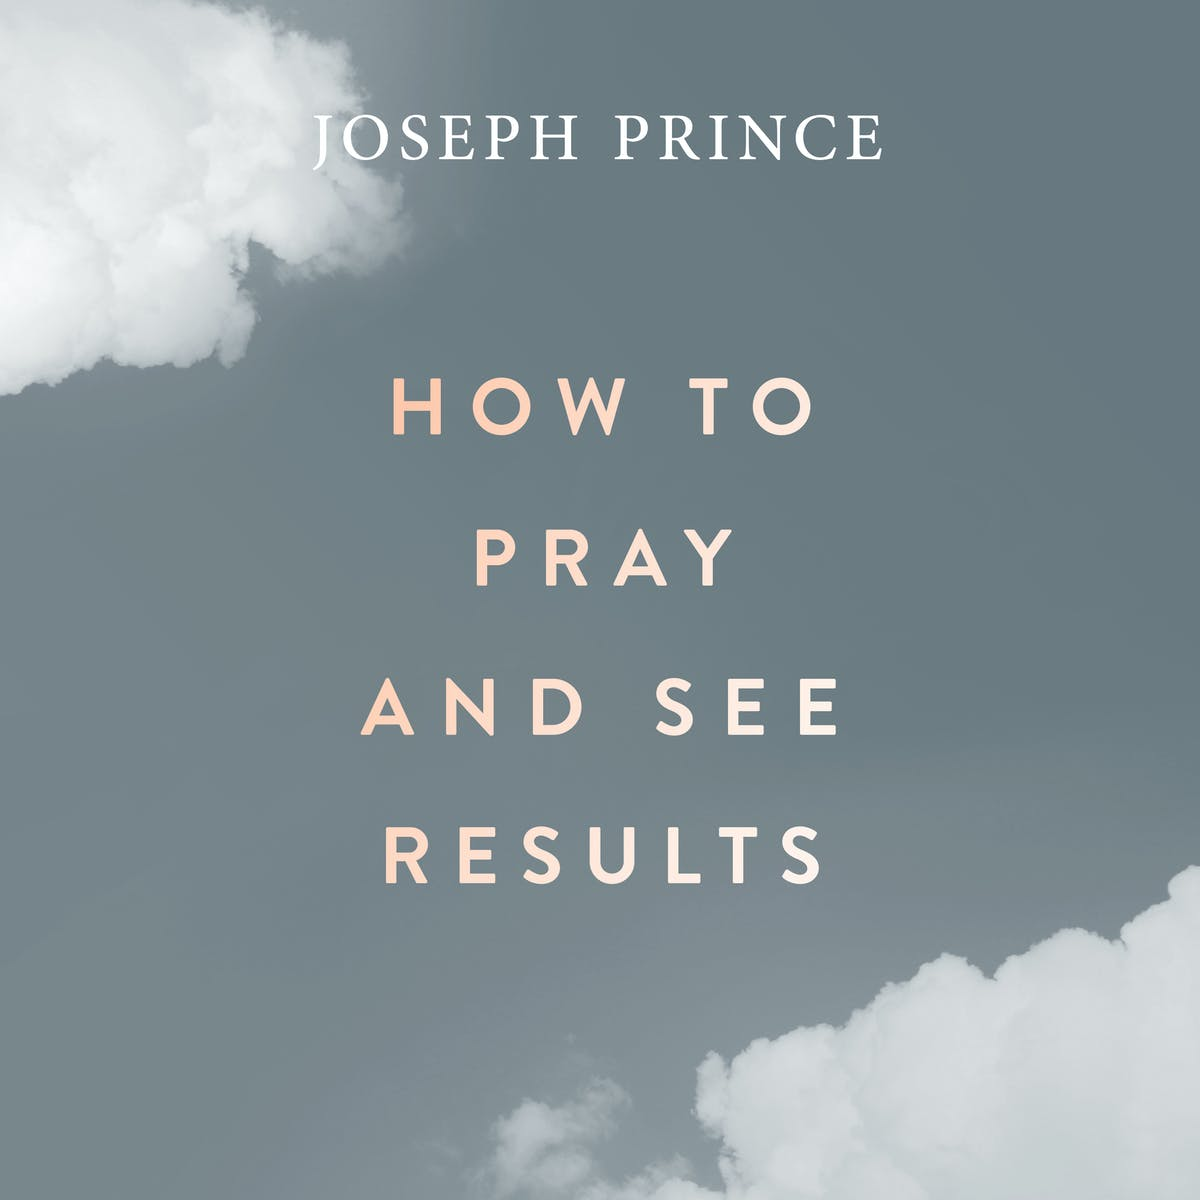 How To Pray And See Results | Official Joseph Prince Sermon Notes